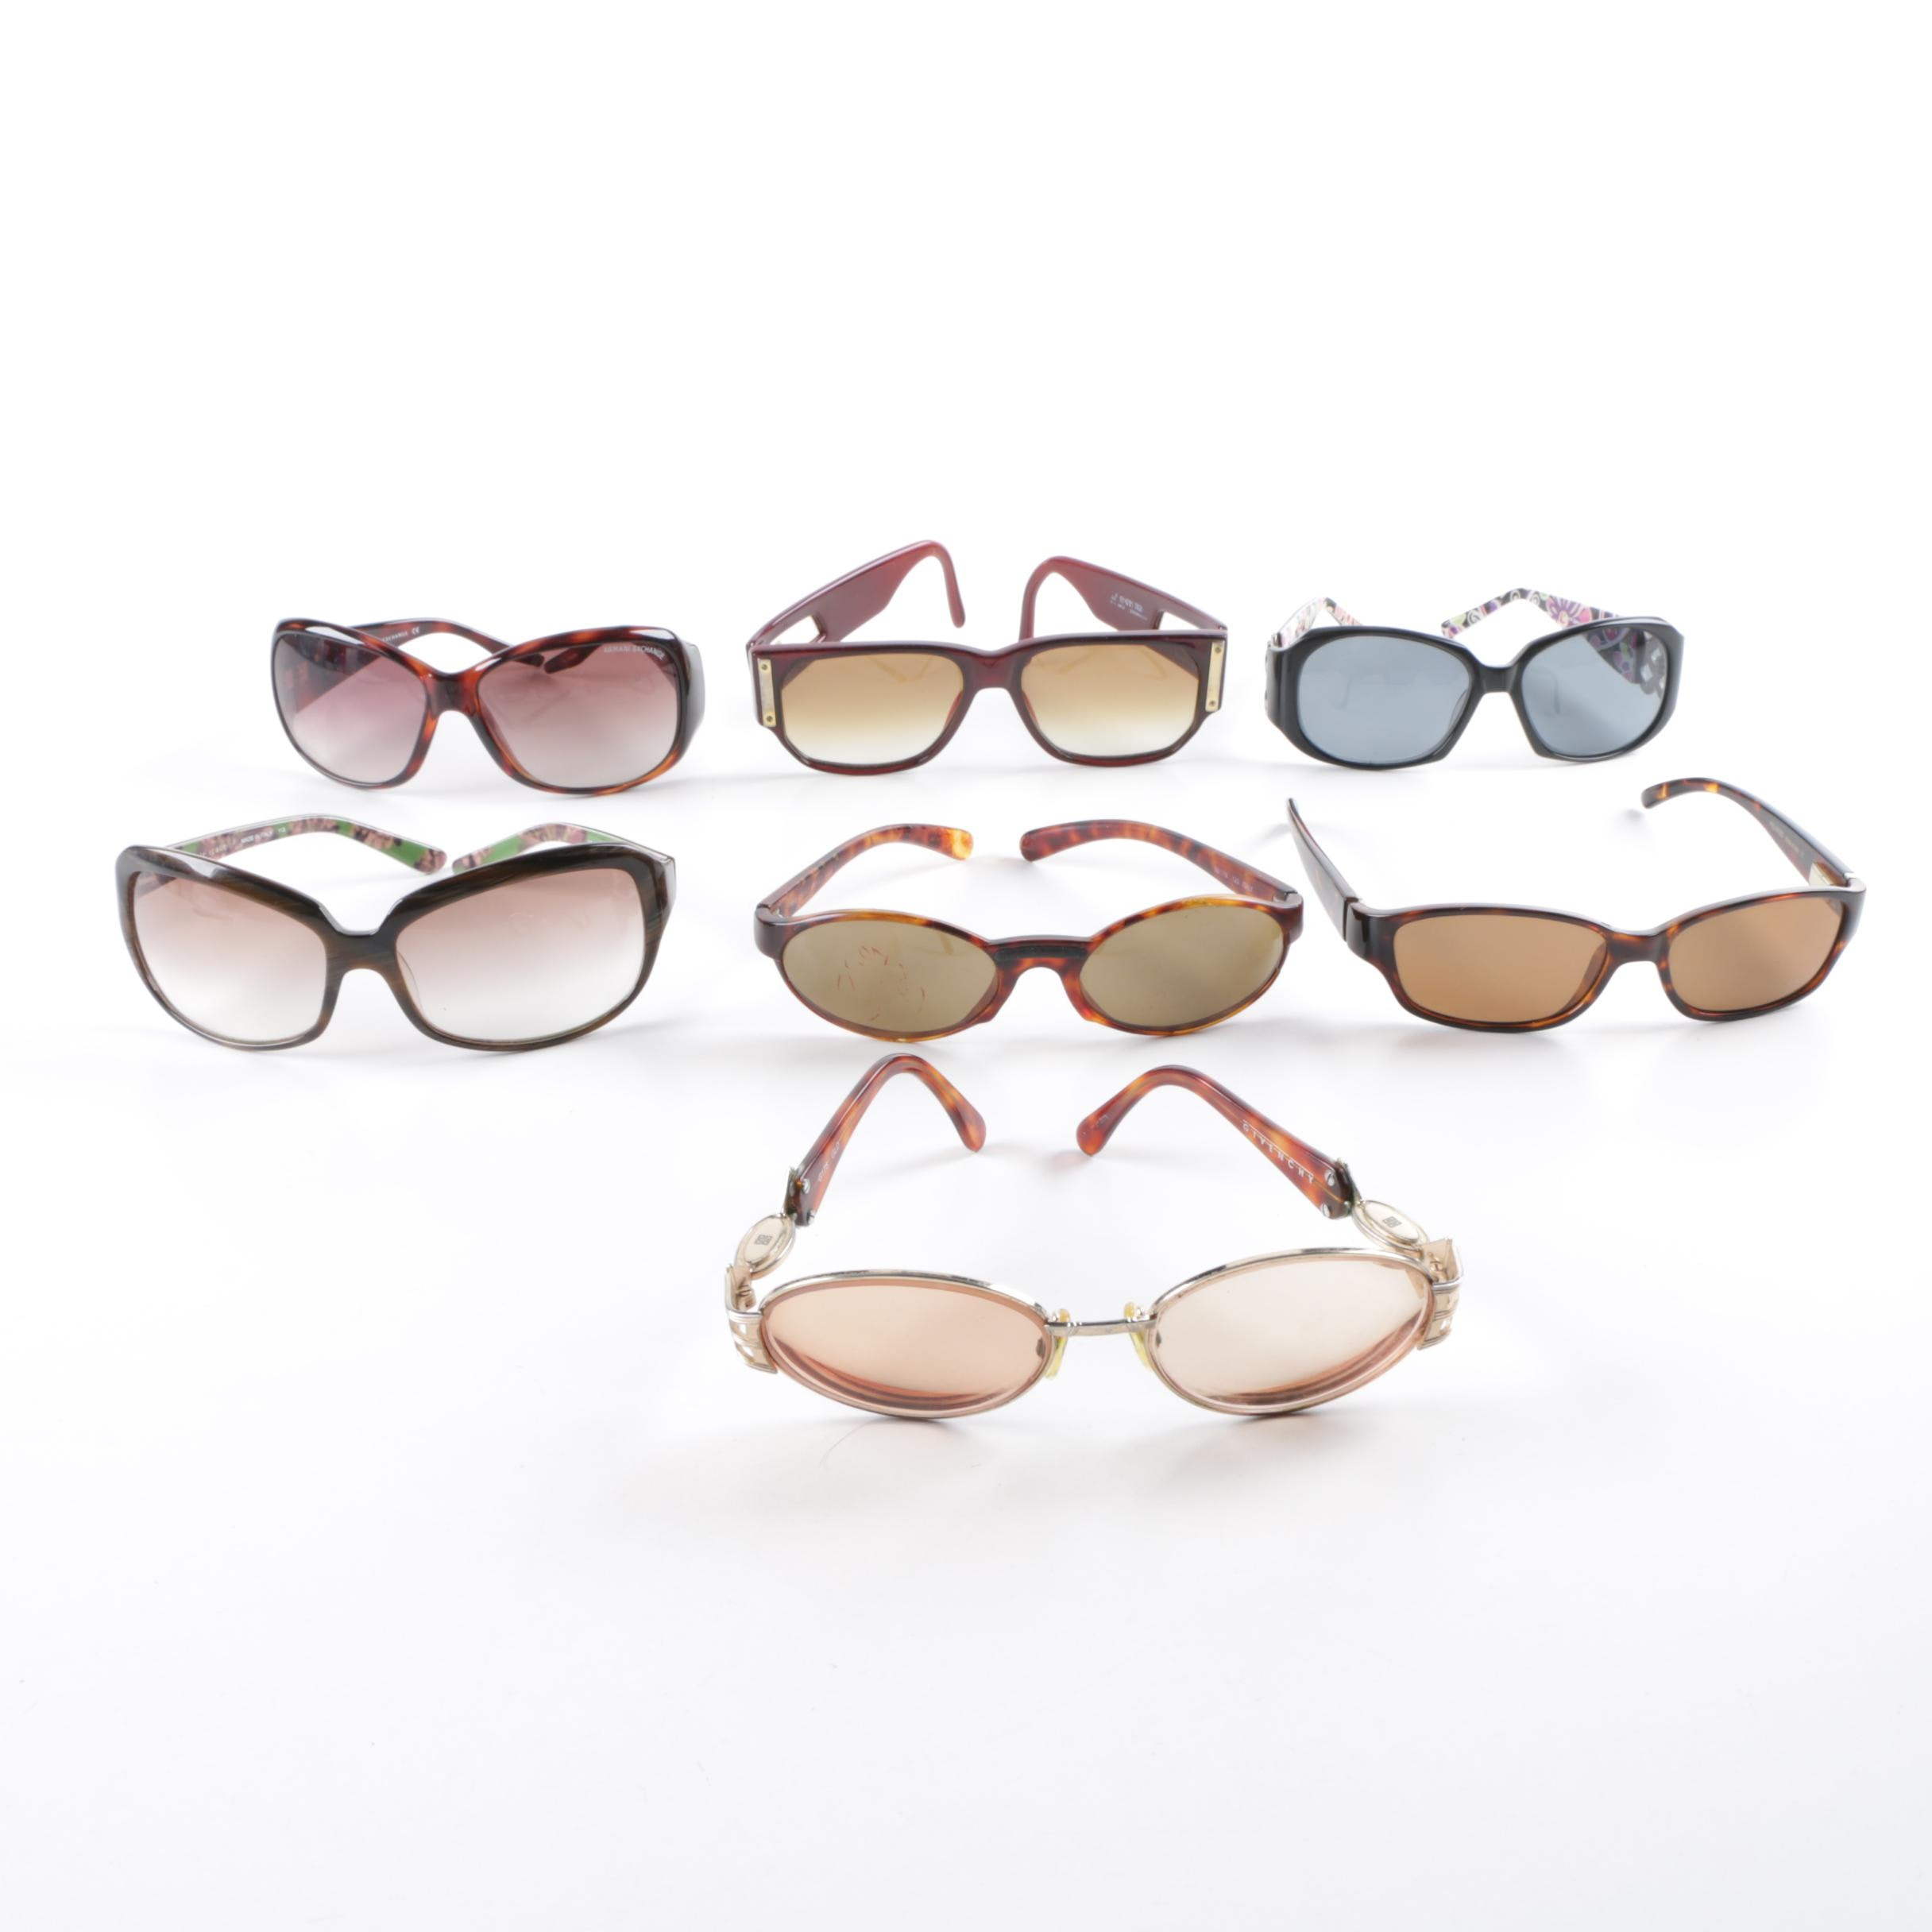 Women's Sunglasses Including Givenchy, Armani Exchange and Kate Spade New York